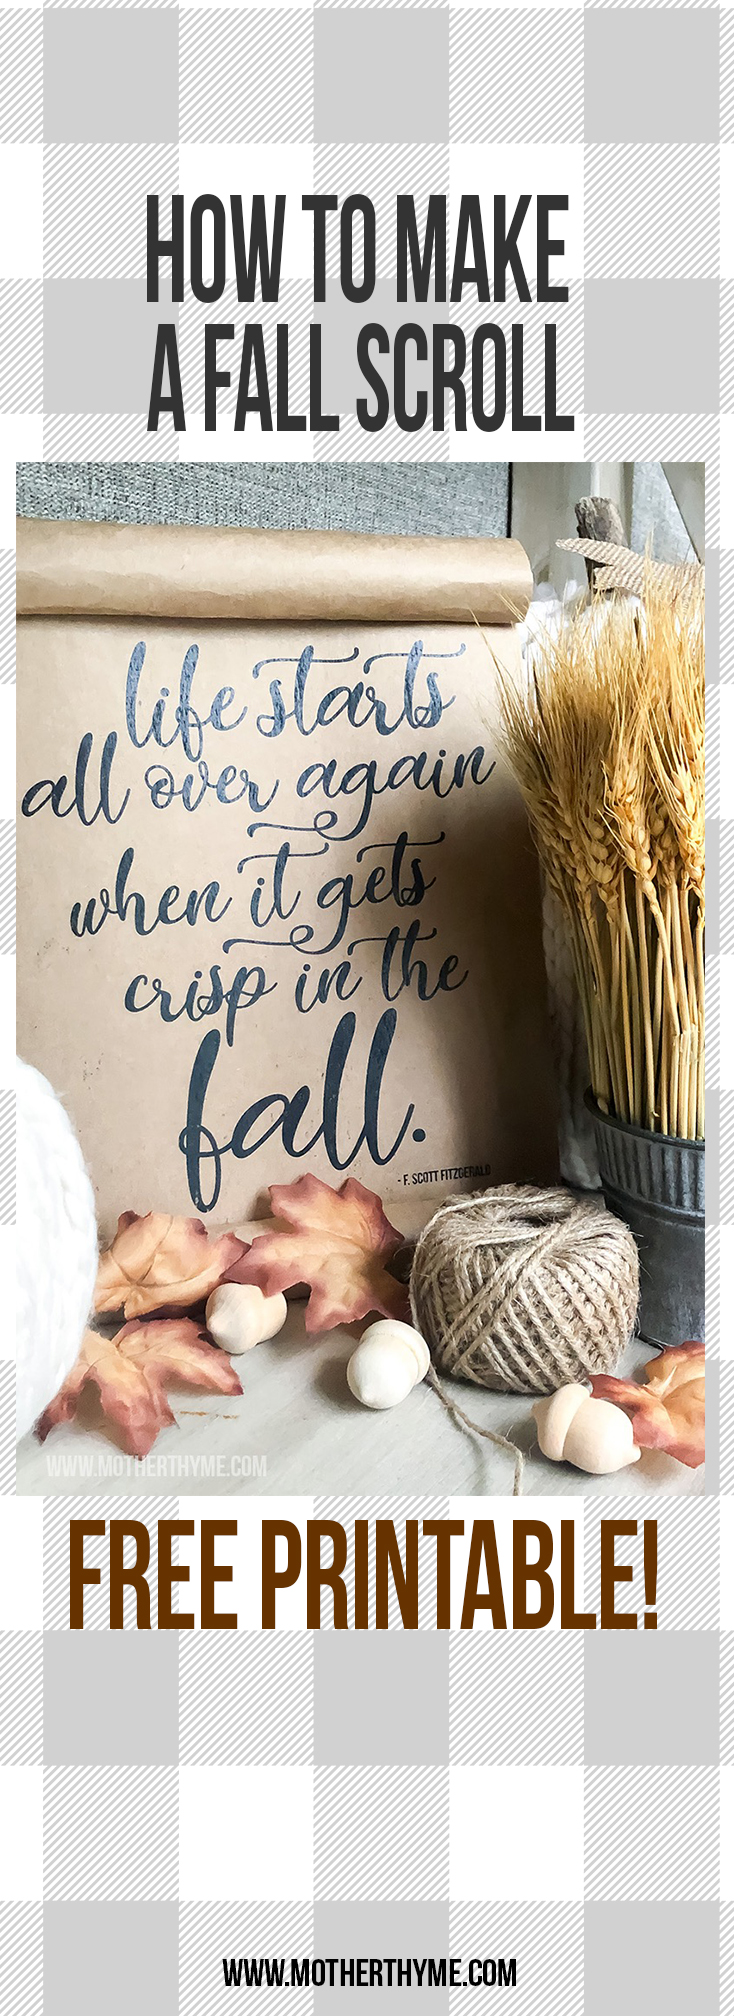 Life Starts Again in the Fall - free printable